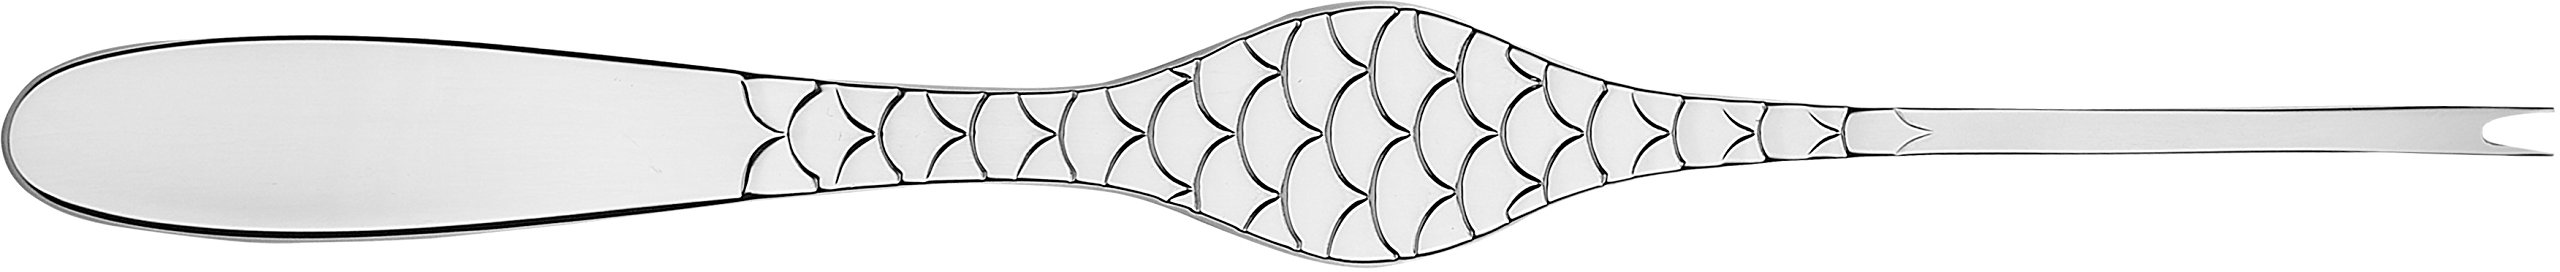 Alessi''Colombina fish'' Shellfish Forks in 18/10 Stainless Steel Mirror Polished (Set of 6), Silver